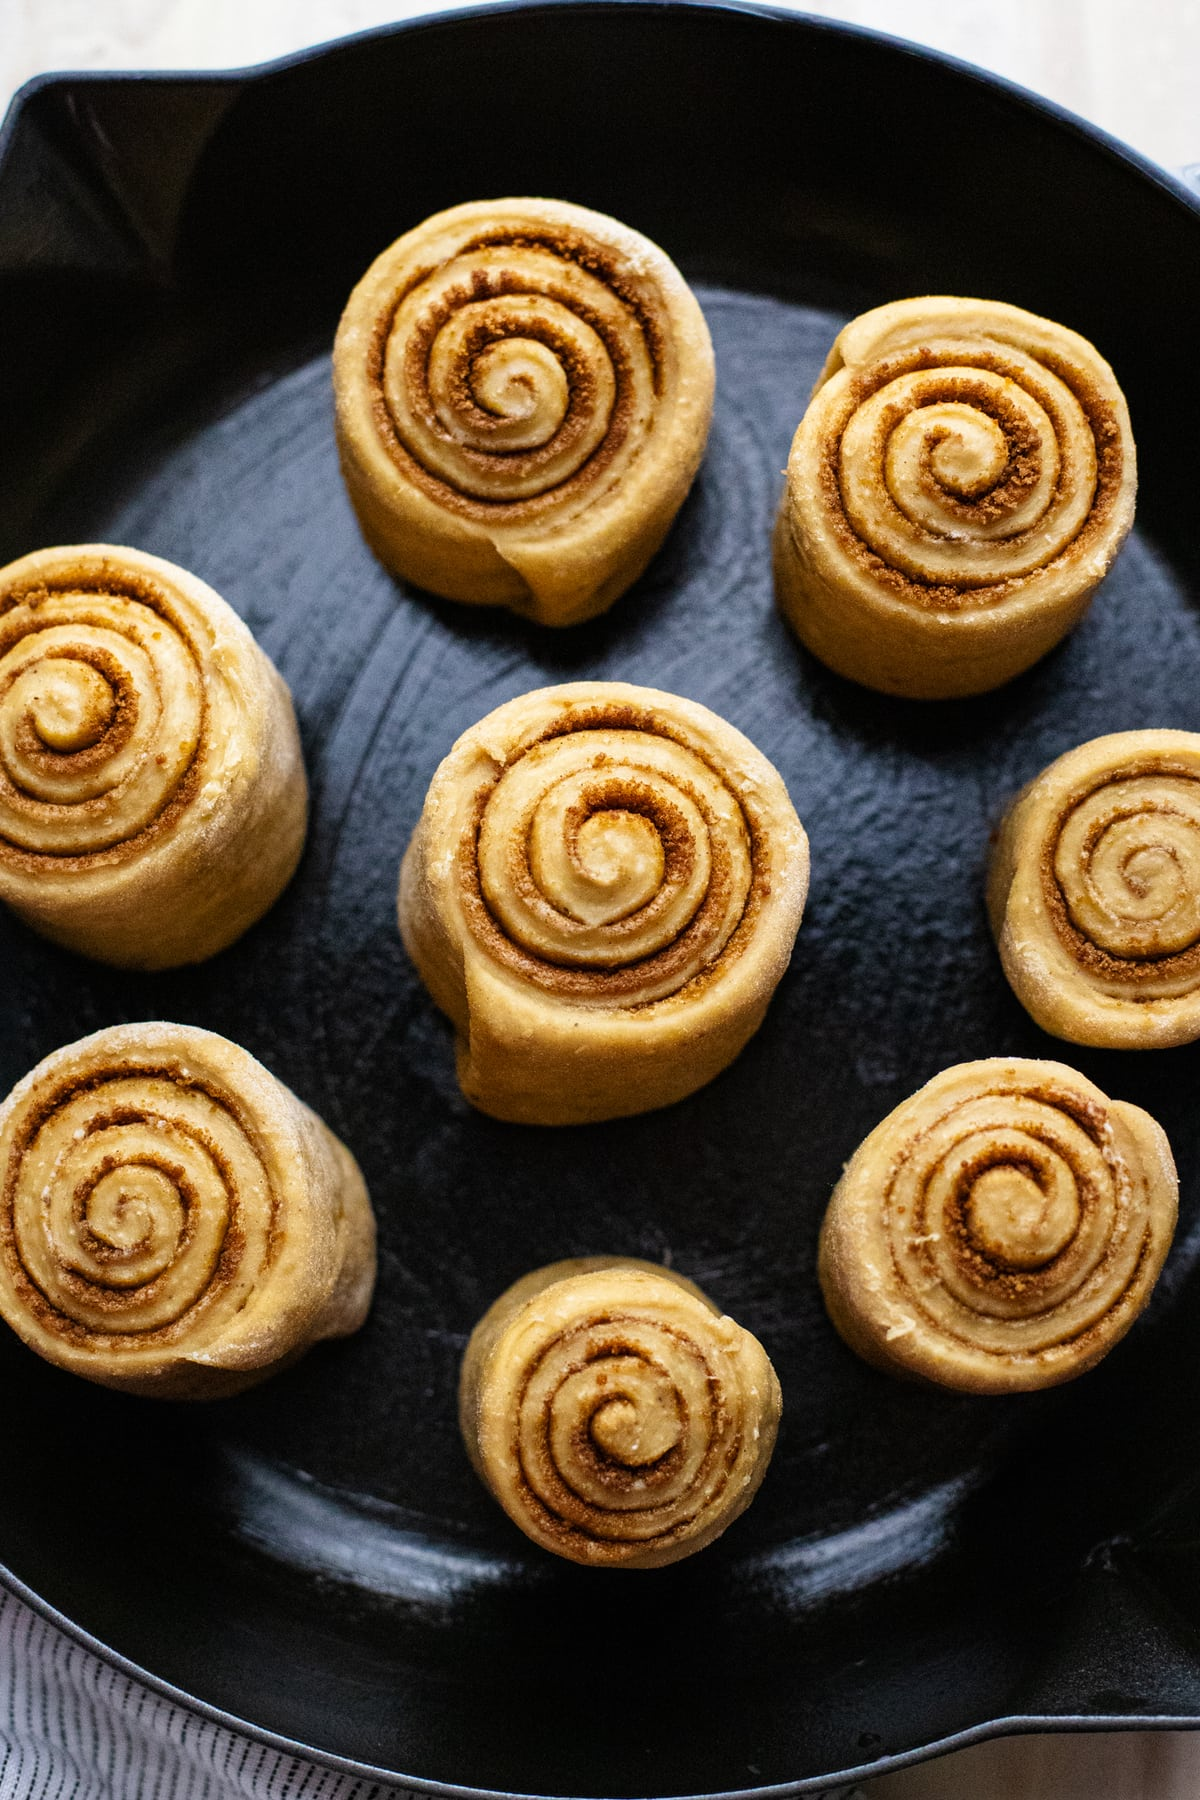 Raw cinnamon rolls in greased skillet.